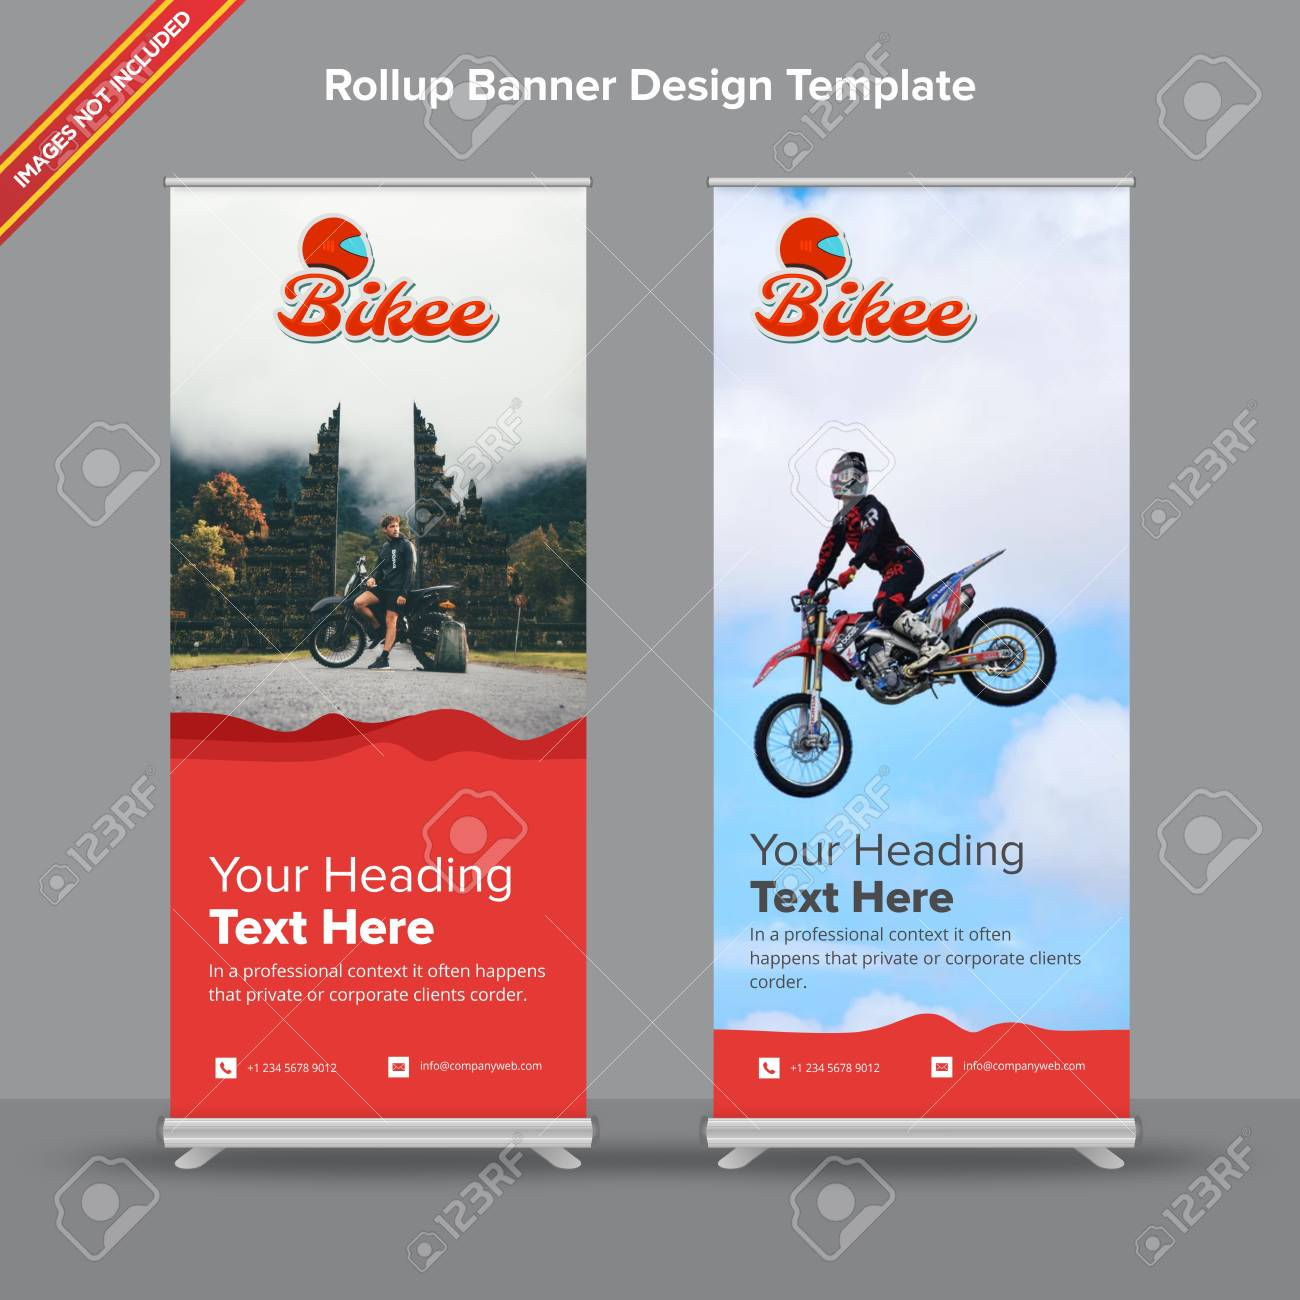 Rollup Rollup Banner With Artistictic Red Waves Will Take Care Of All